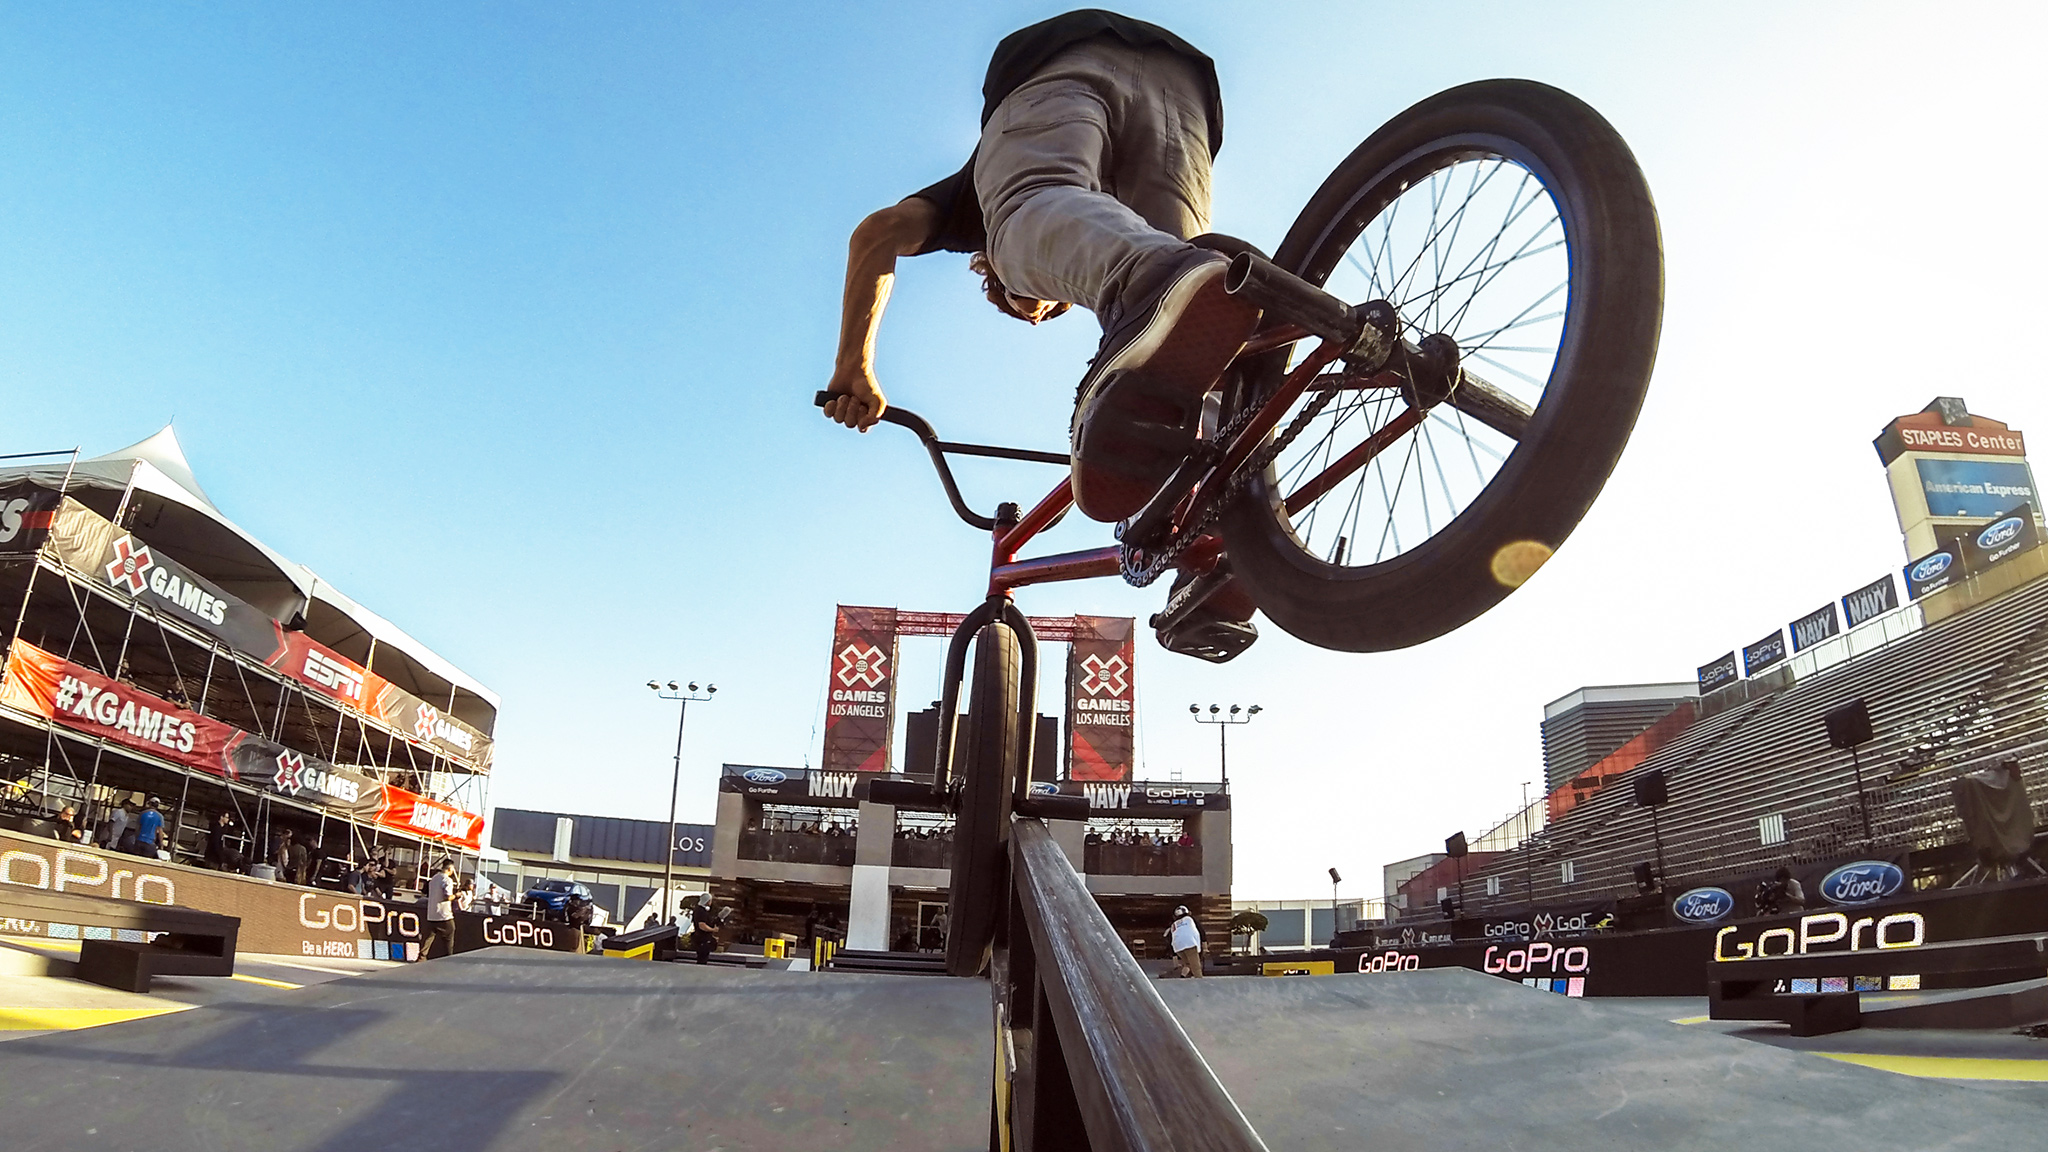 The world of BMX Street as seen through the lens of one of the GoPro cameras trained on eventual bronze-medal winner Jeremiah Smith.